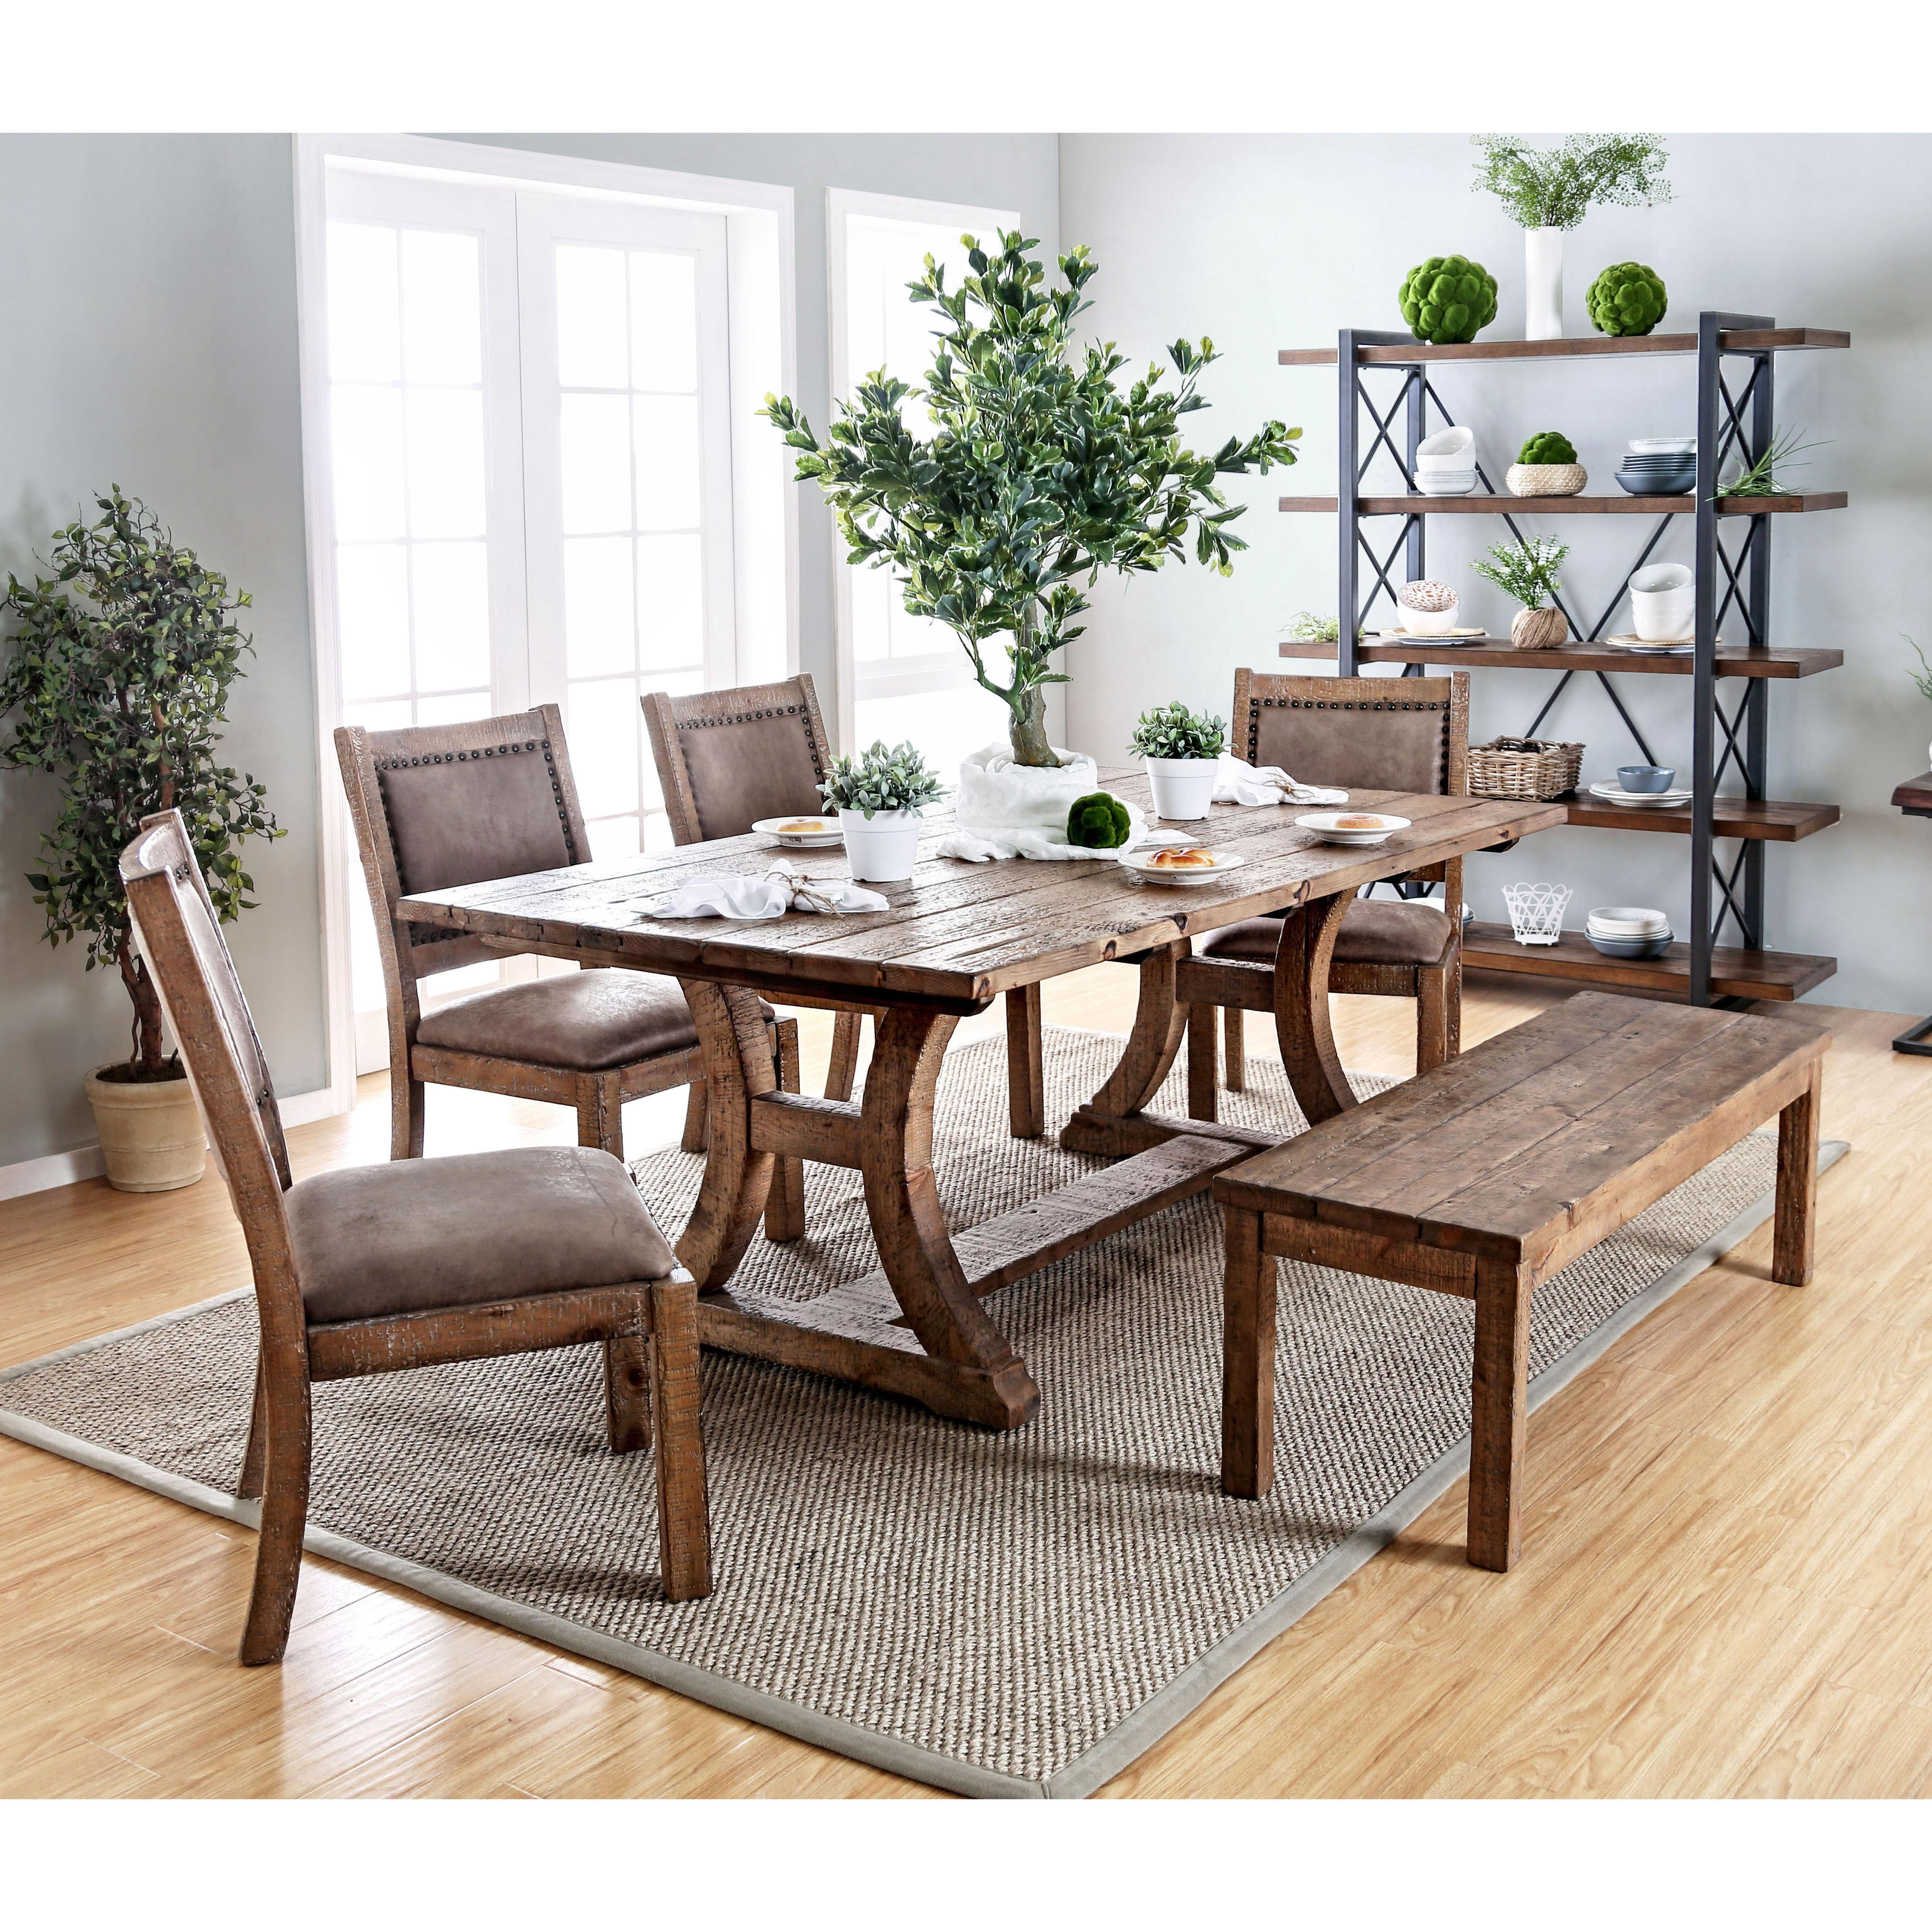 Most Up To Date Falmer 3 Piece Solid Wood Dining Sets Inside Buy Rustic Kitchen & Dining Room Tables Online At Overstock (View 6 of 25)